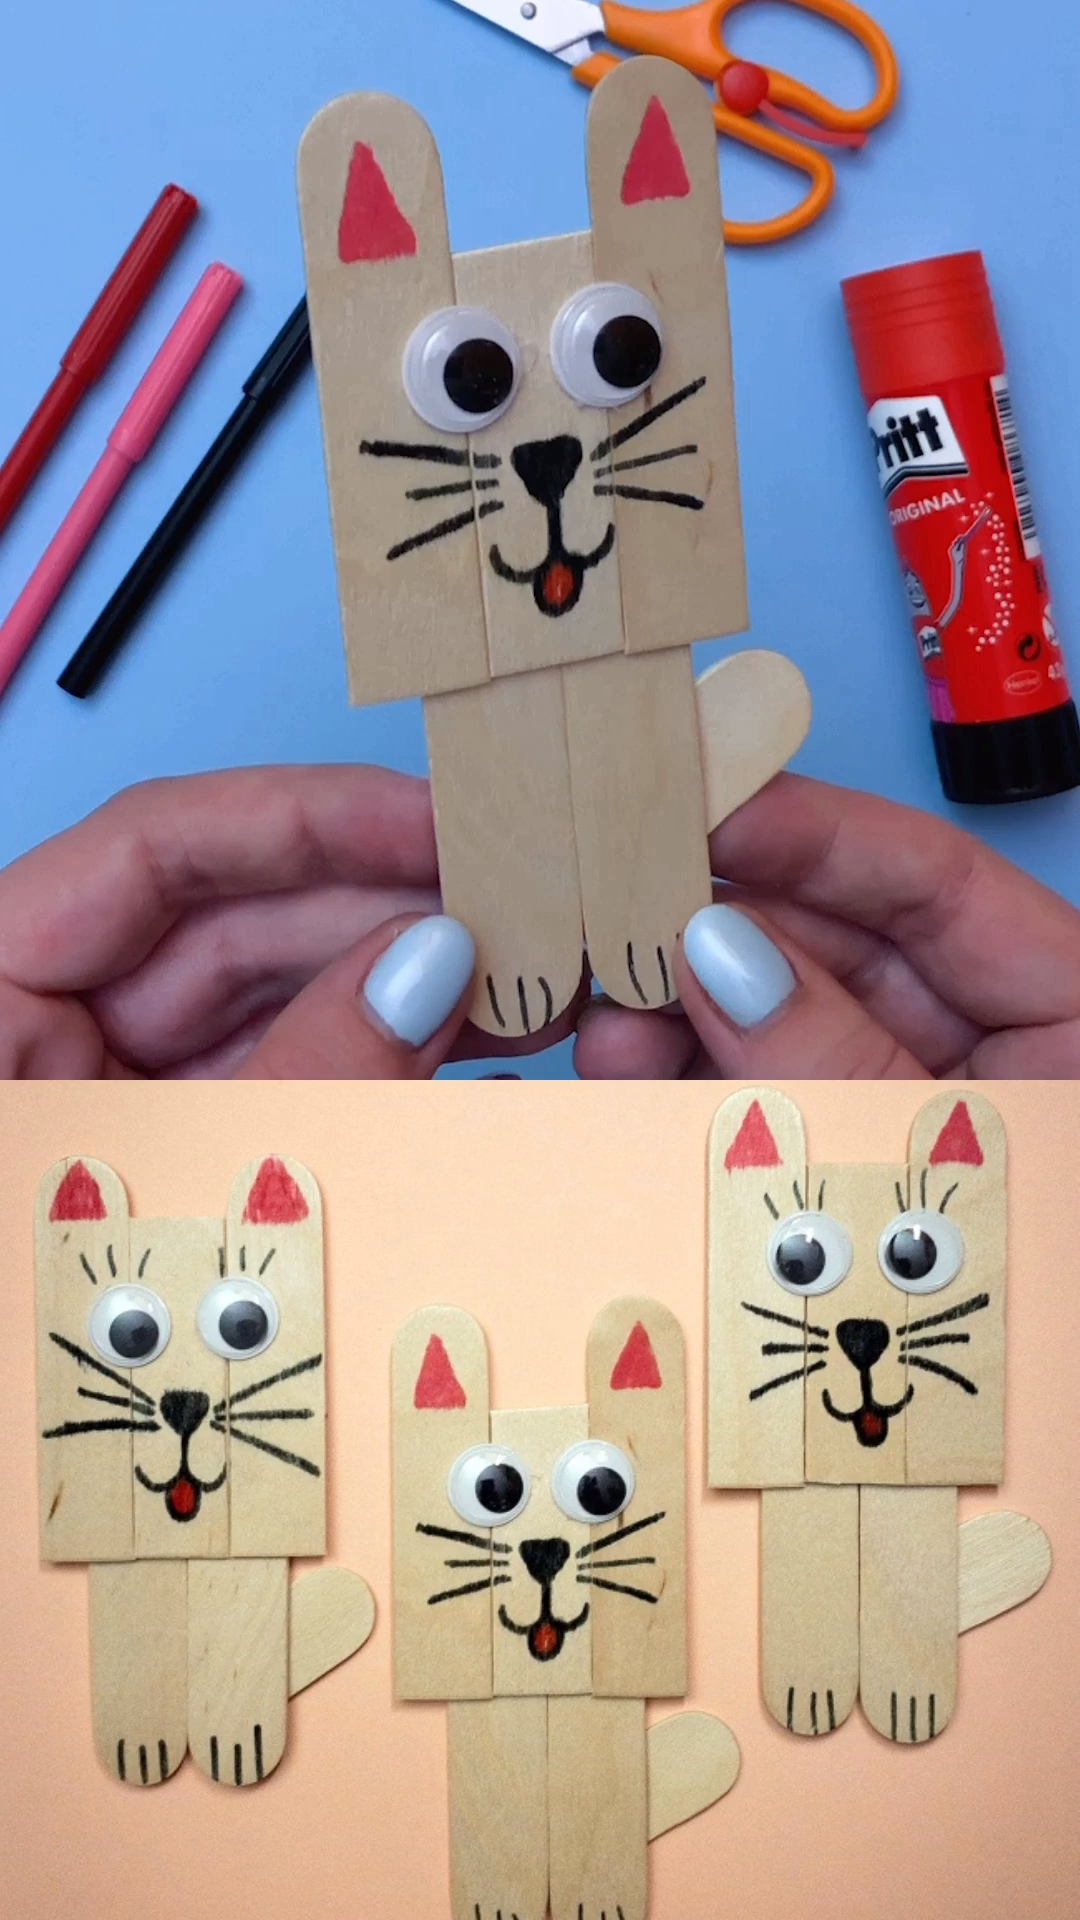 Popsicle Stick Kitty Craft Popsicle Stick Kitty Craft cute popsicle stick craft for kids to make Fun popsicle stick art project for classrooms and kids Cat craft